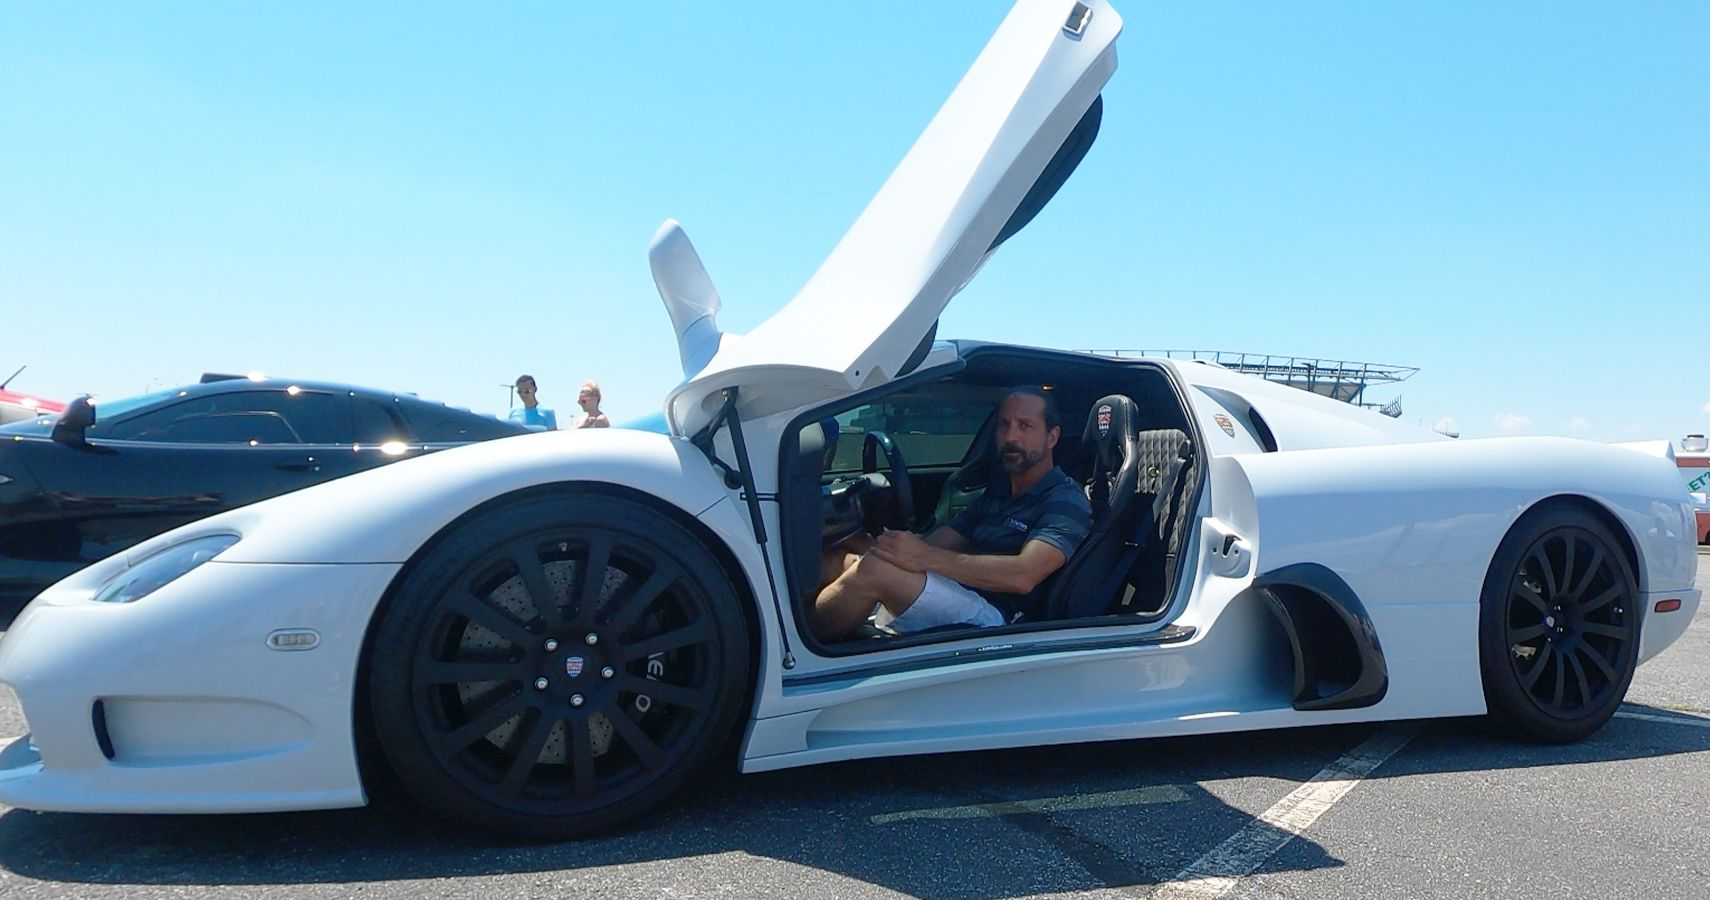 EXCLUSIVE: Record-Setting SSC Tuatara Owner Dr Larry Caplin Explains What Happened In Trailer Rollover